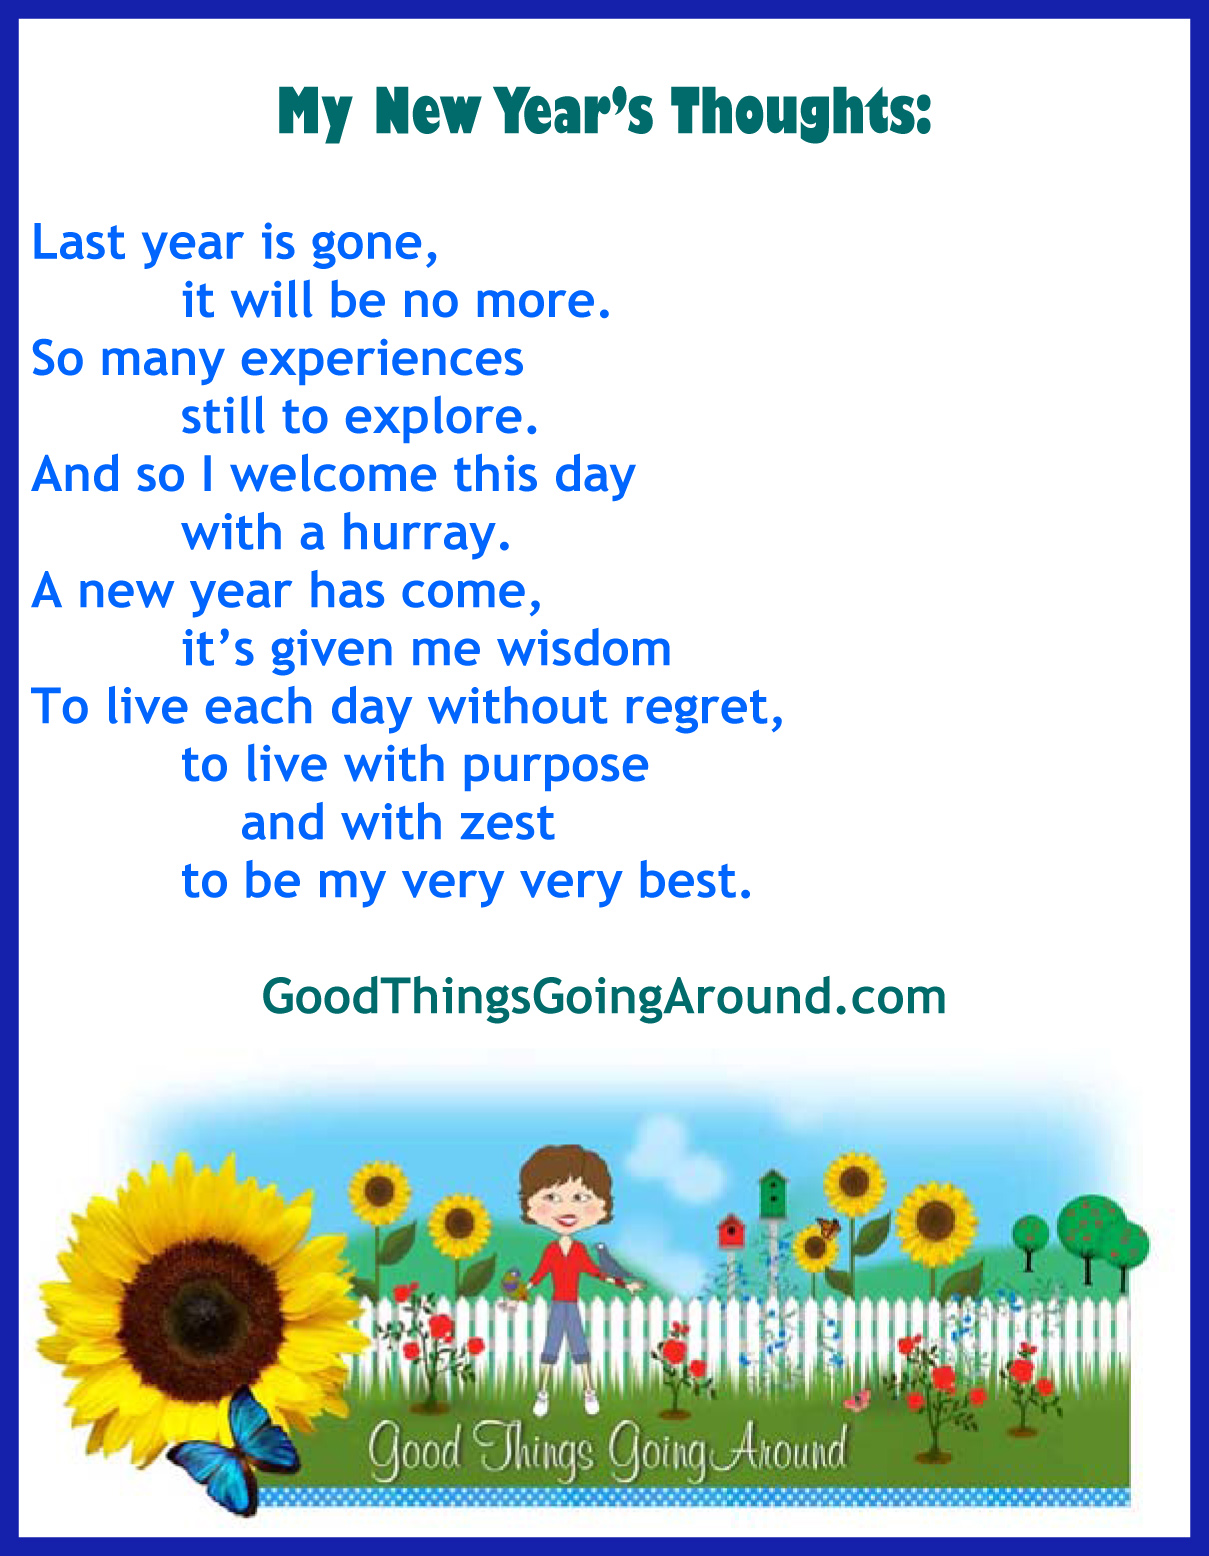 My Life Lessons – New Years Thoughts | Good Things Going Around